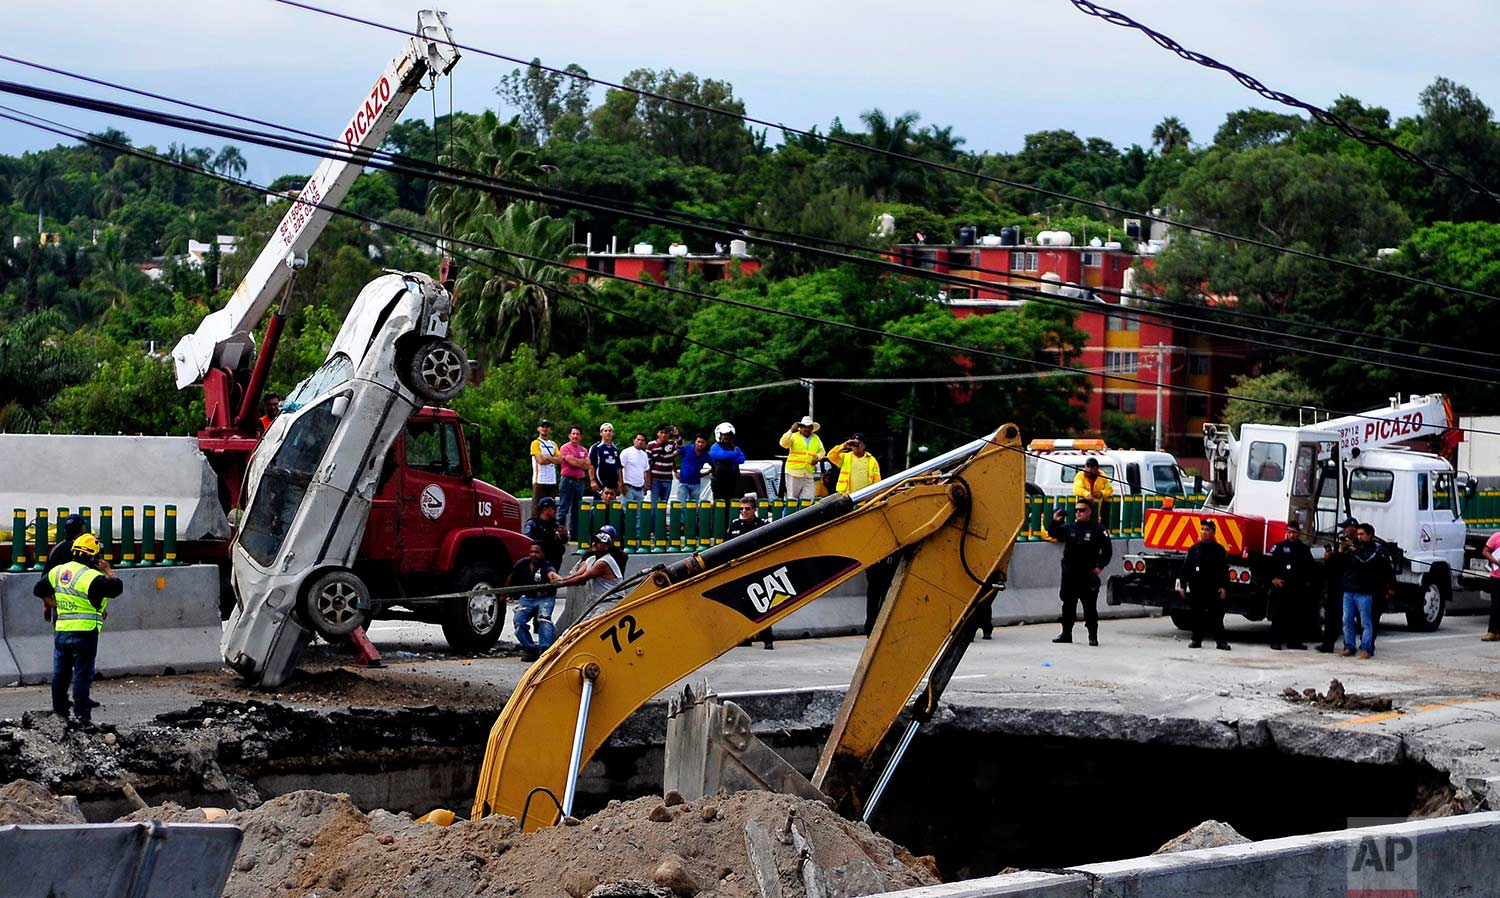 Rescue workers use a crane to lift a vehicle that drove into a sinkhole on a highway in Cuernavaca, Mexico, Wednesday, July 12, 2017. (AP Photo/Tony Rivera)